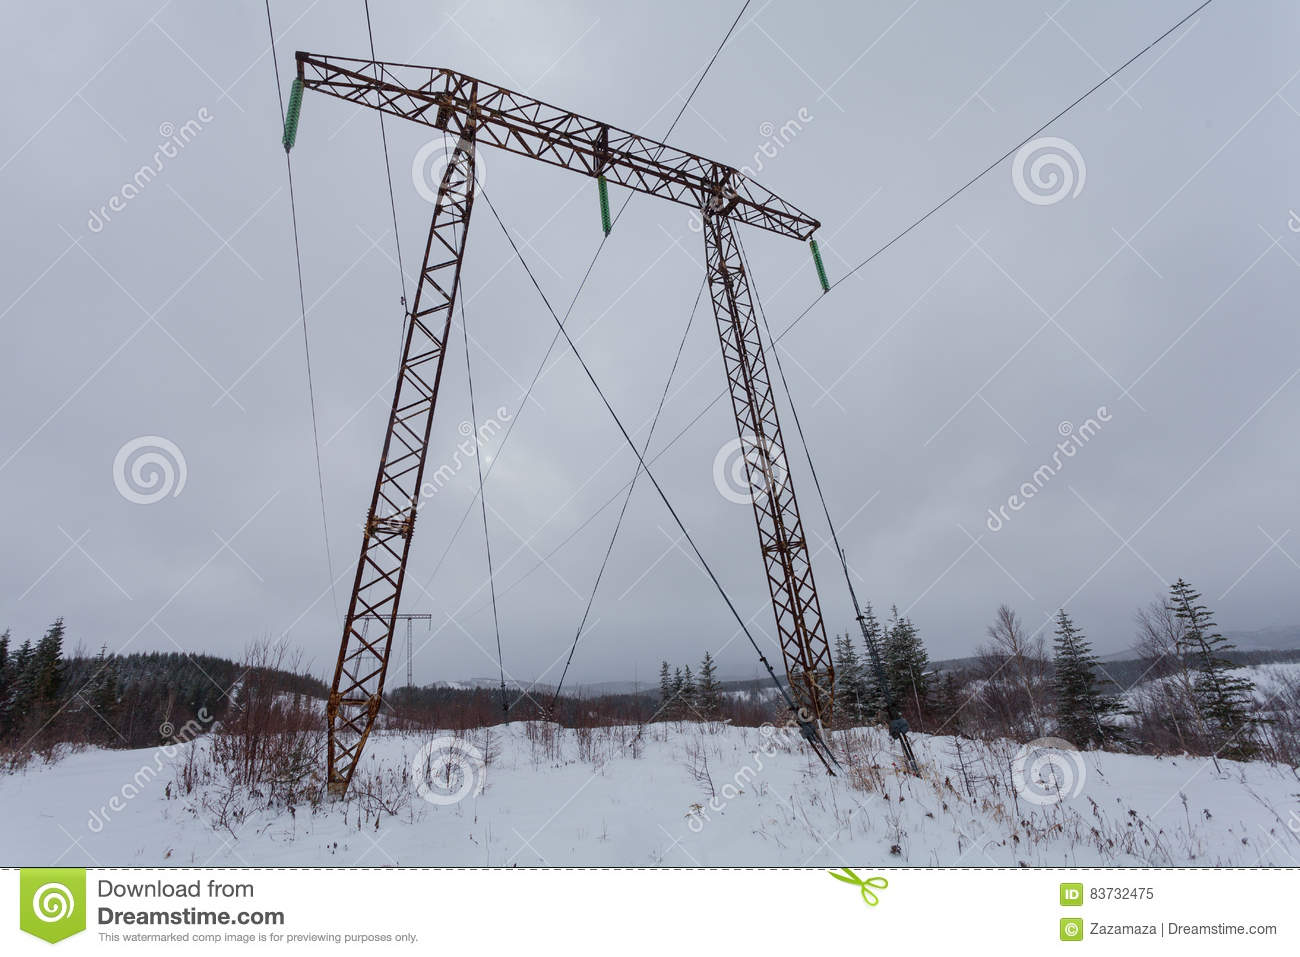 Electricity transmission power lines on winter background High voltage tower.